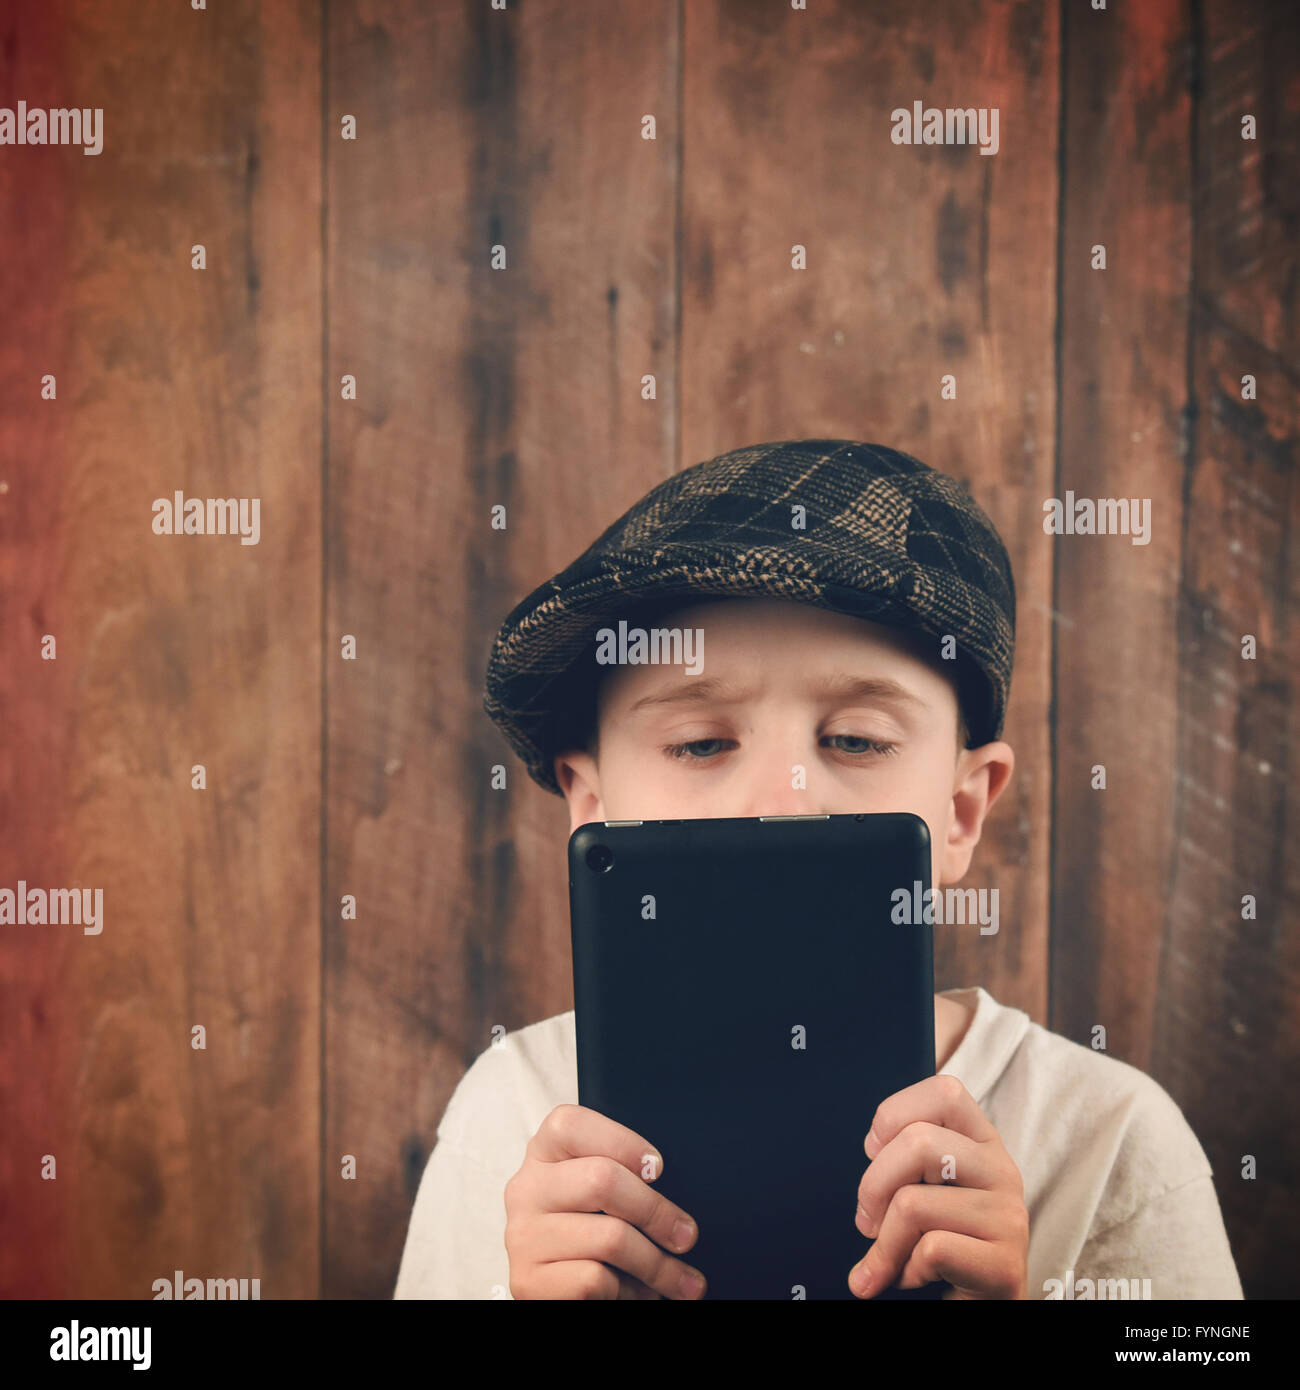 A boy is holding a technology tablet and reading a screen. The chikld is wearing a vintage cap with a wood background - Stock Image